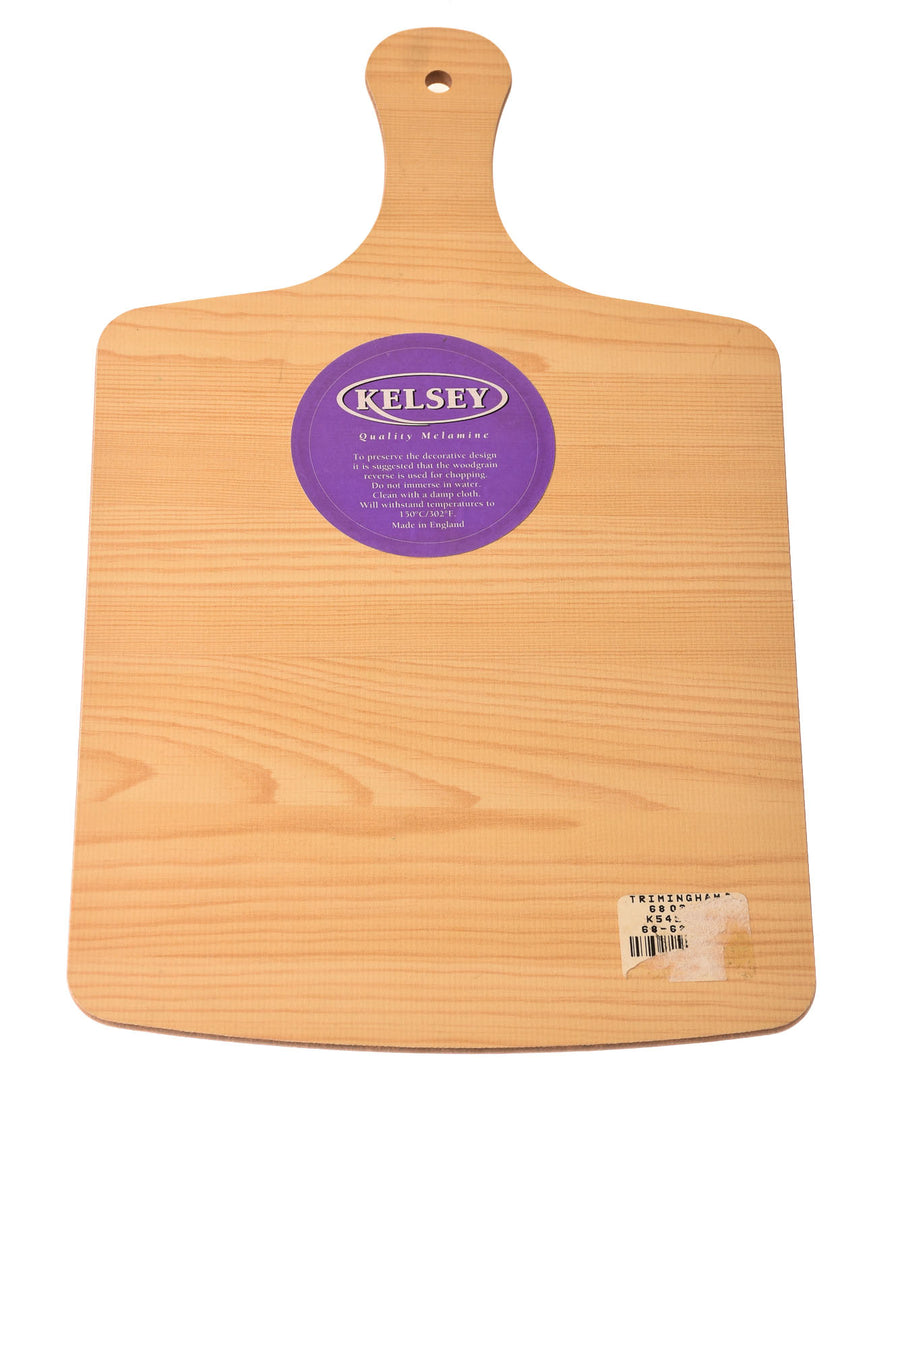 Cutting Board By Kelsey